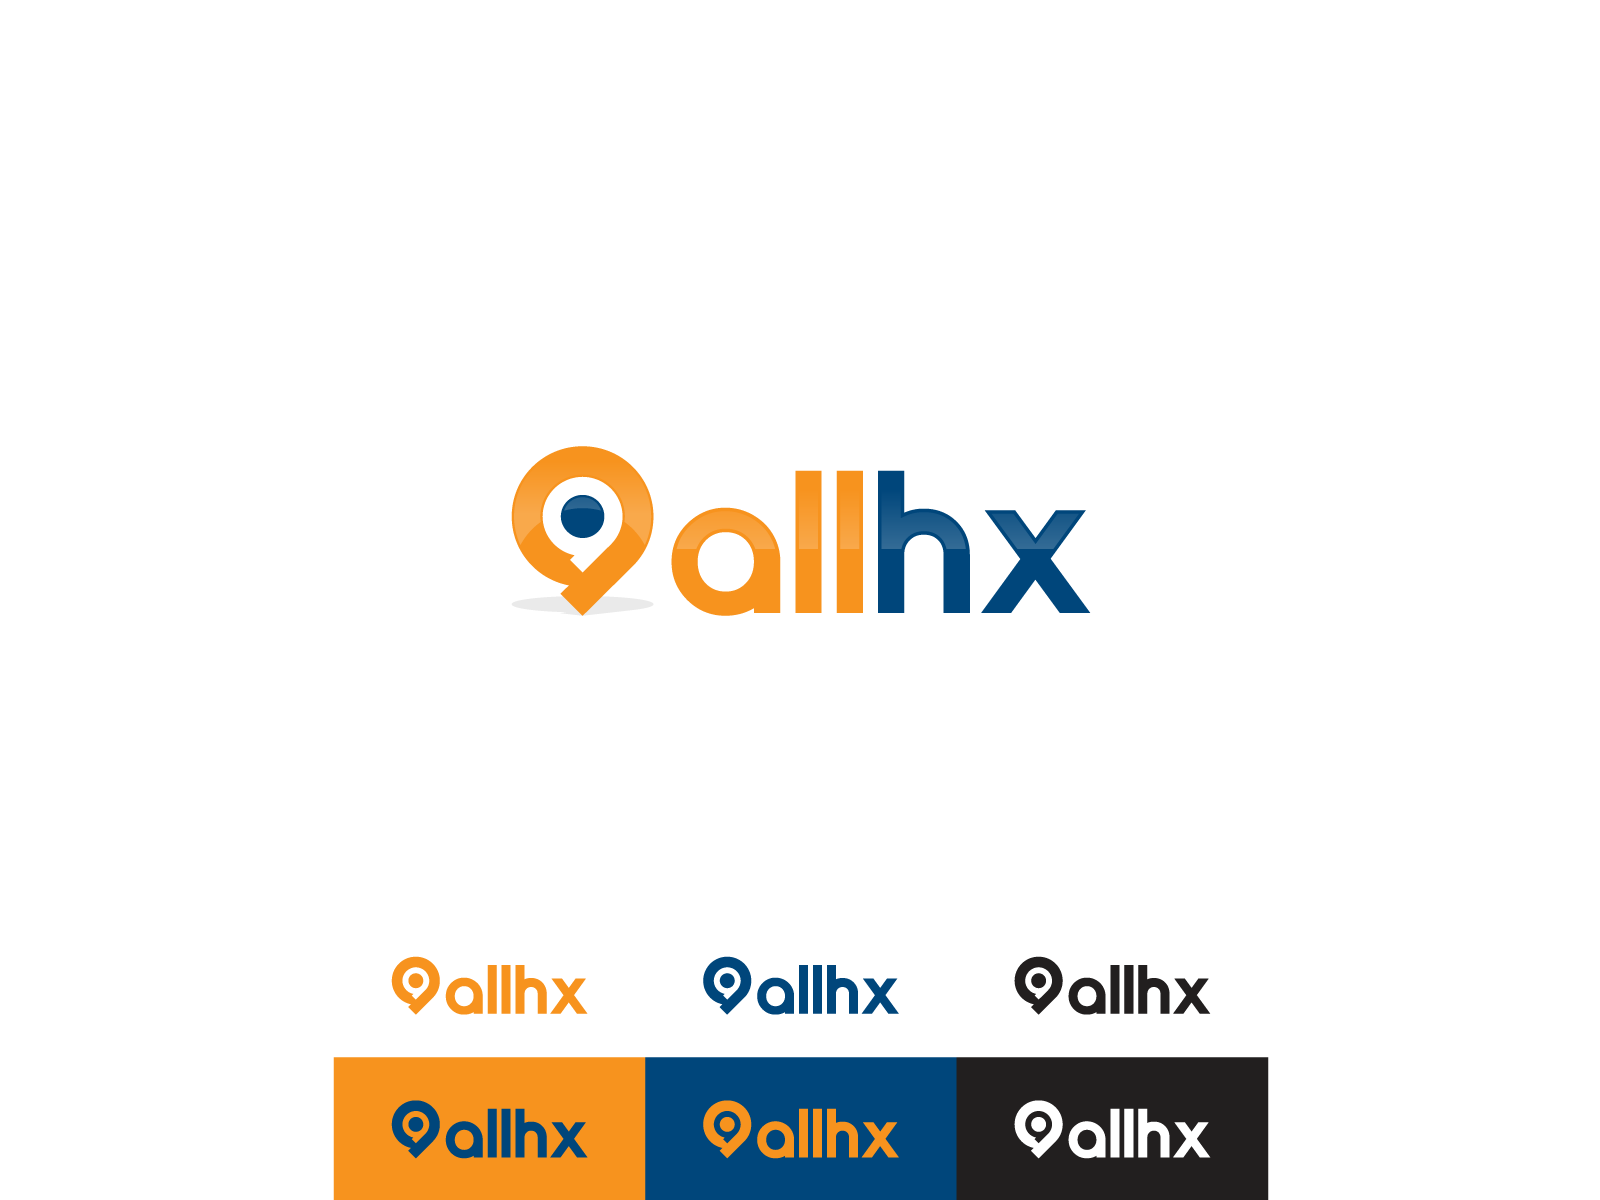 Create the next logo for allhx